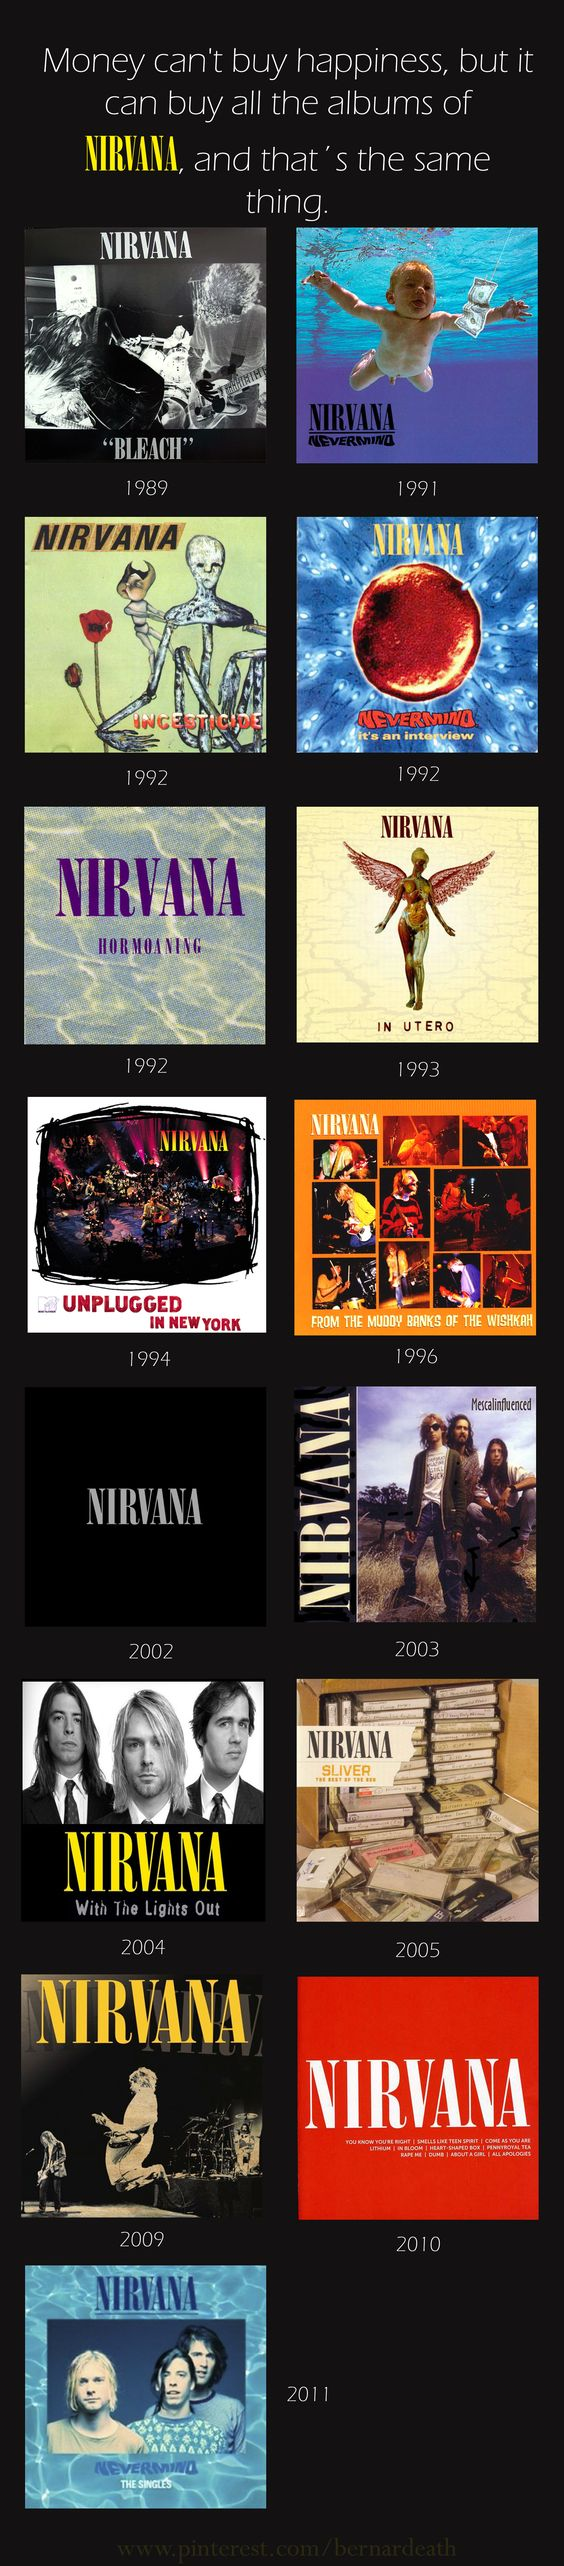 Money can't buy happiness, but it can buy all the albums of NIRVANA, and that´s the same thing.: